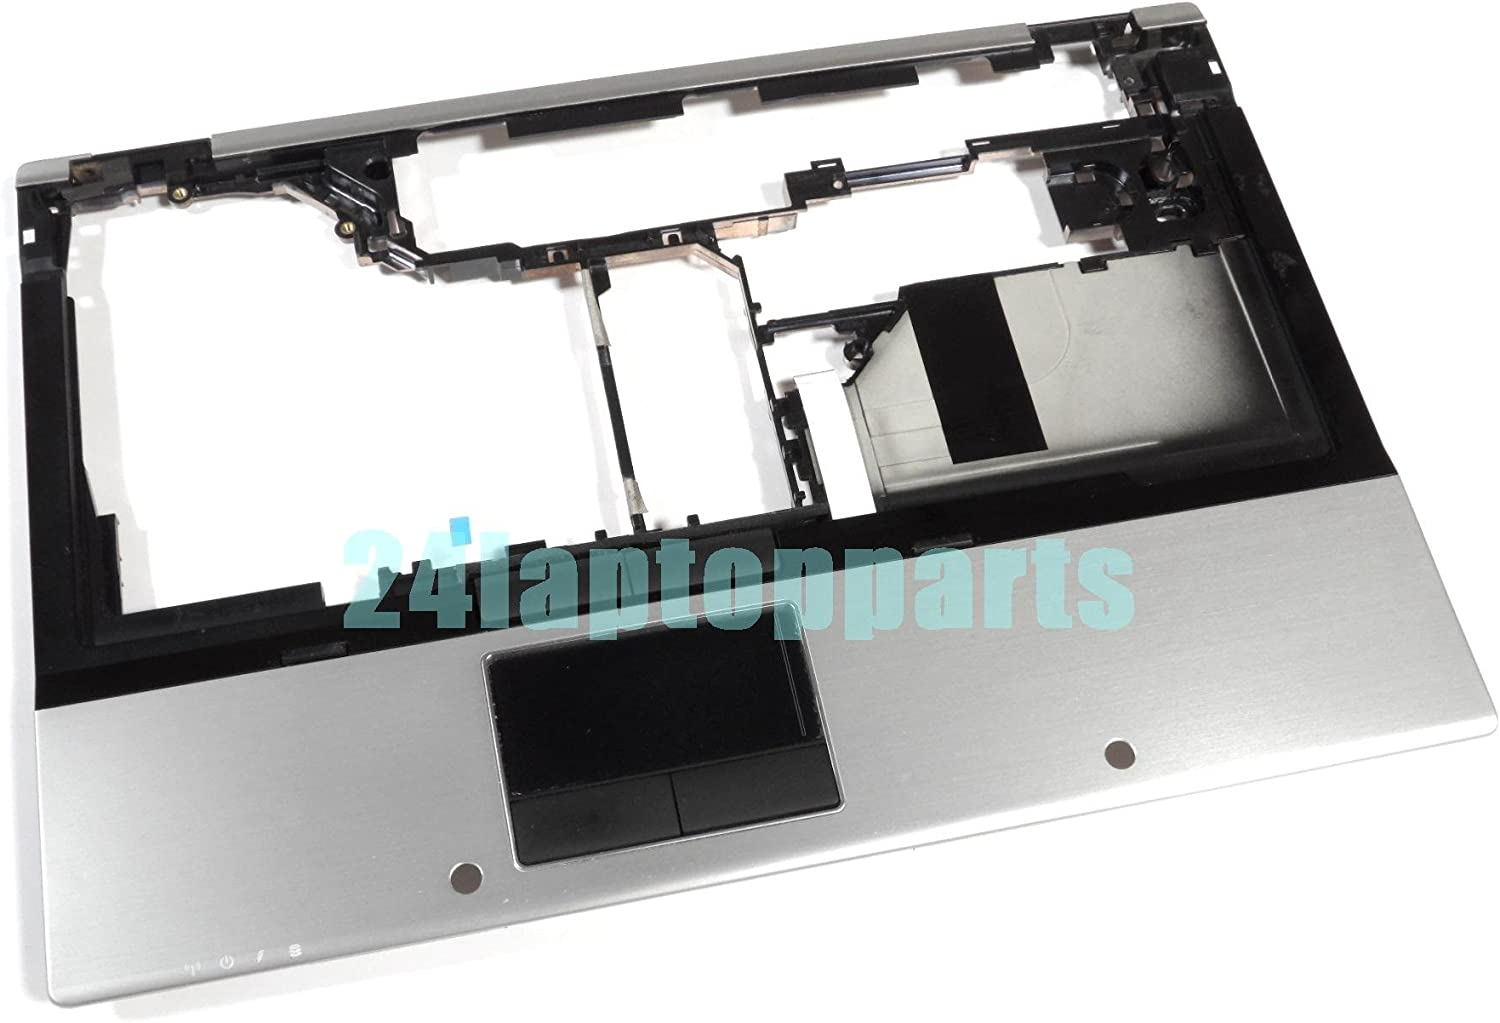 HP 594100-001 Upper CPU cover (chassis top) - With integrated Touchpad and smart card reader, but without fingerprint reader - For use with HP EliteBook 8440w